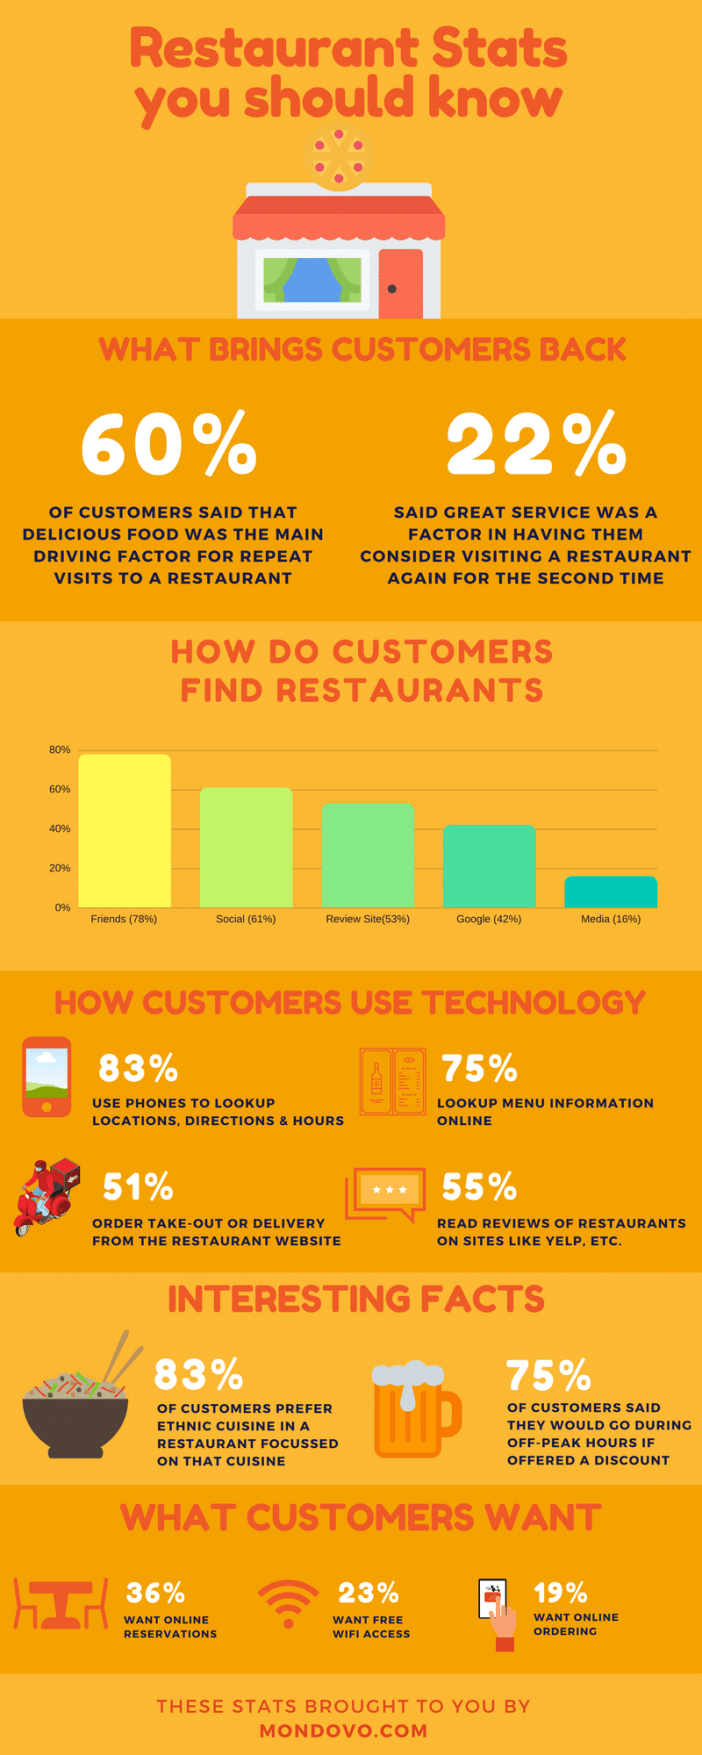 12 Data for success with marketing strategy a restaurant